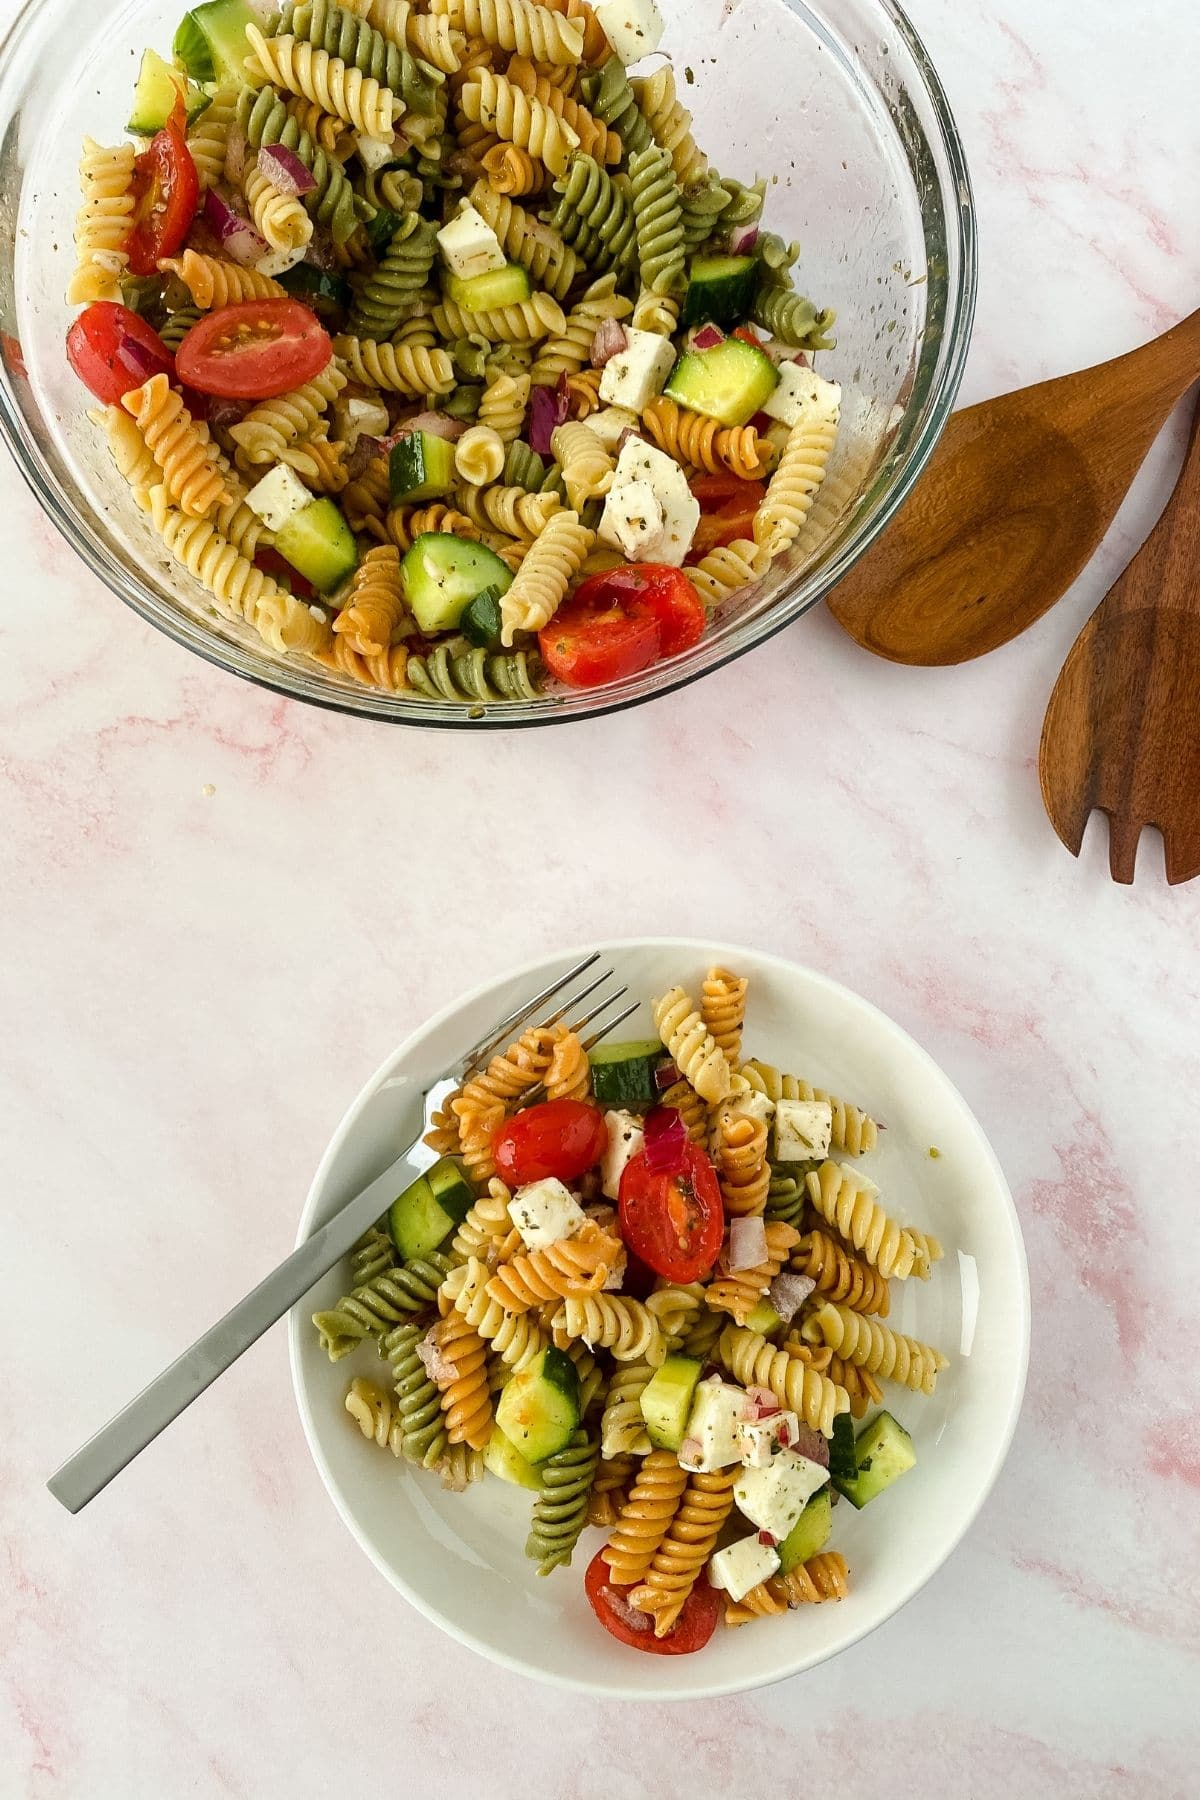 Image looking down on white bowl of pasta salad next to large glass bowl of salad